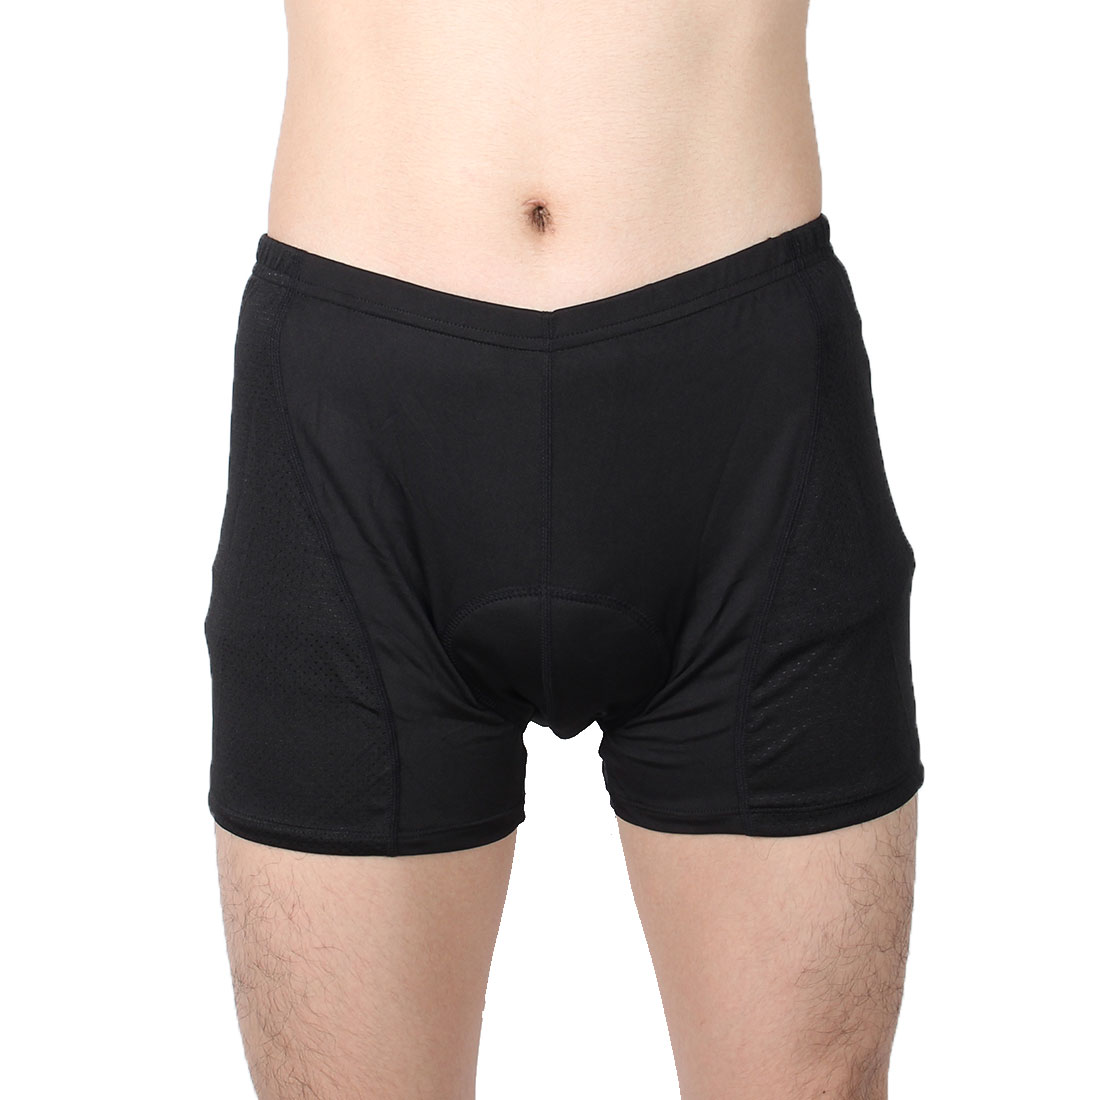 Men Polyester 3D Padded Outdoor Riding Bicycle Biking Underpants Cycling Shorts Black XL